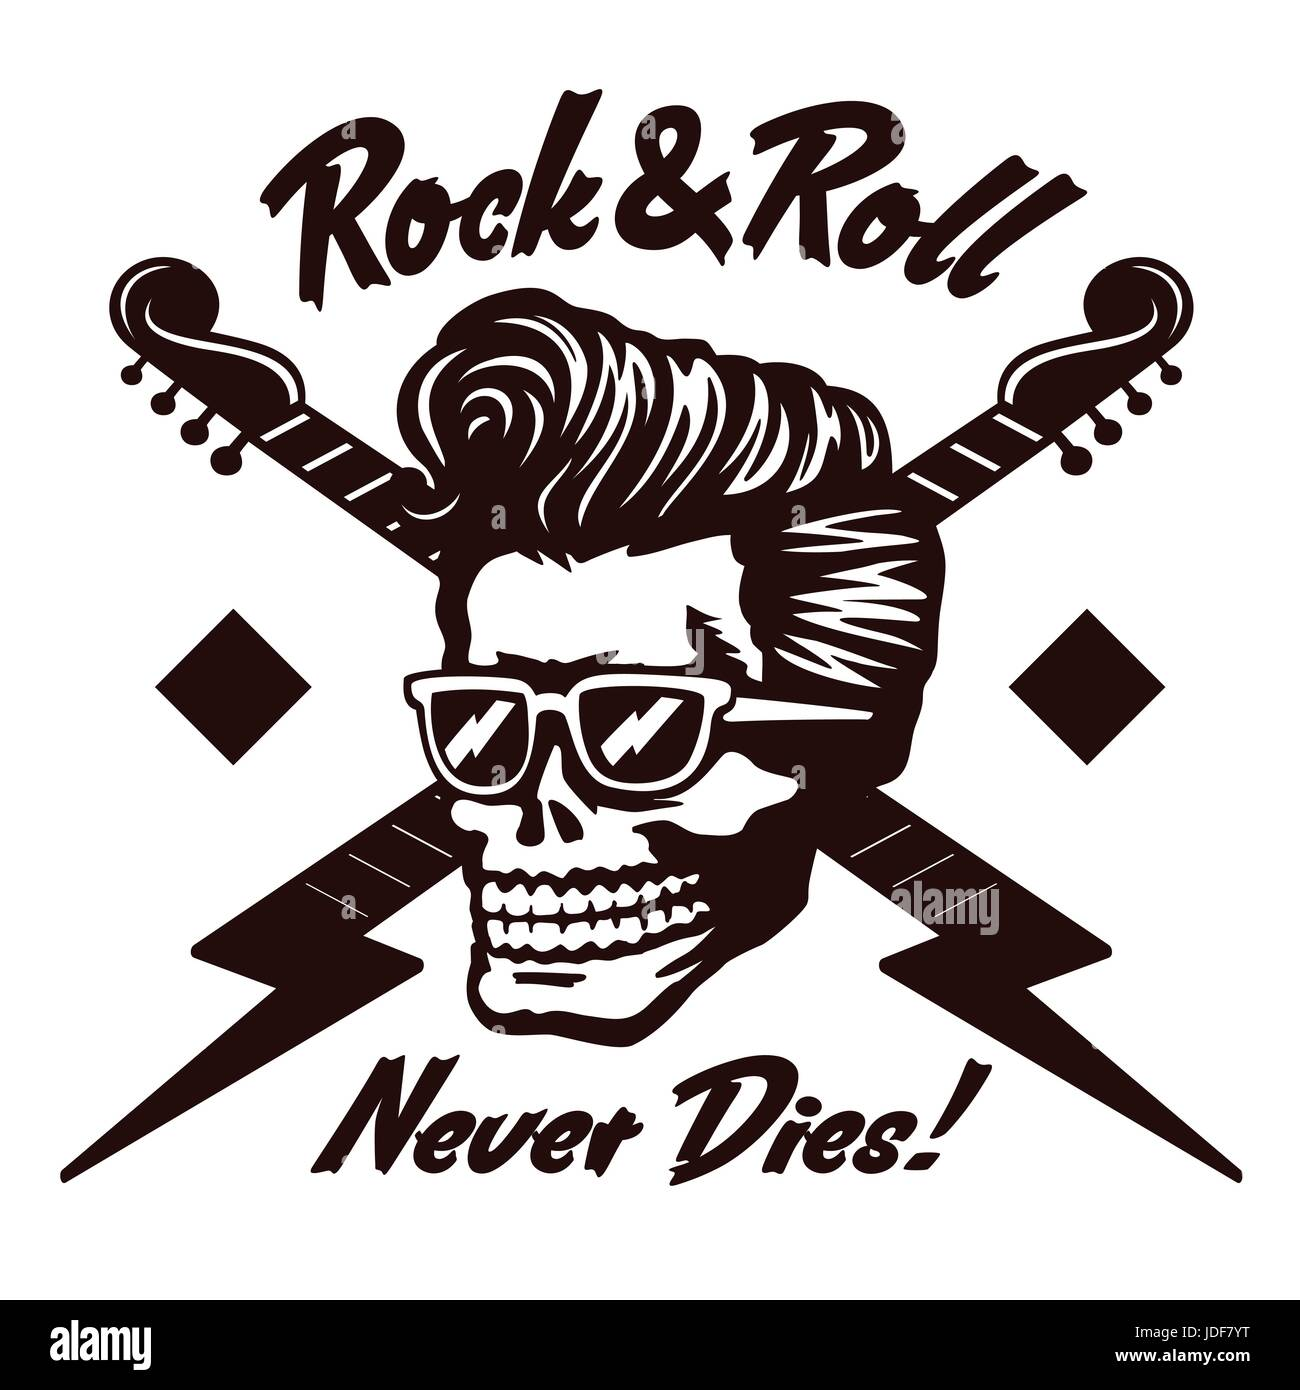 Rock'n'Roll never dies! Skull zombie head with rockabilly pomp hairstyle and sunglasses  vector illustration - Stock Image